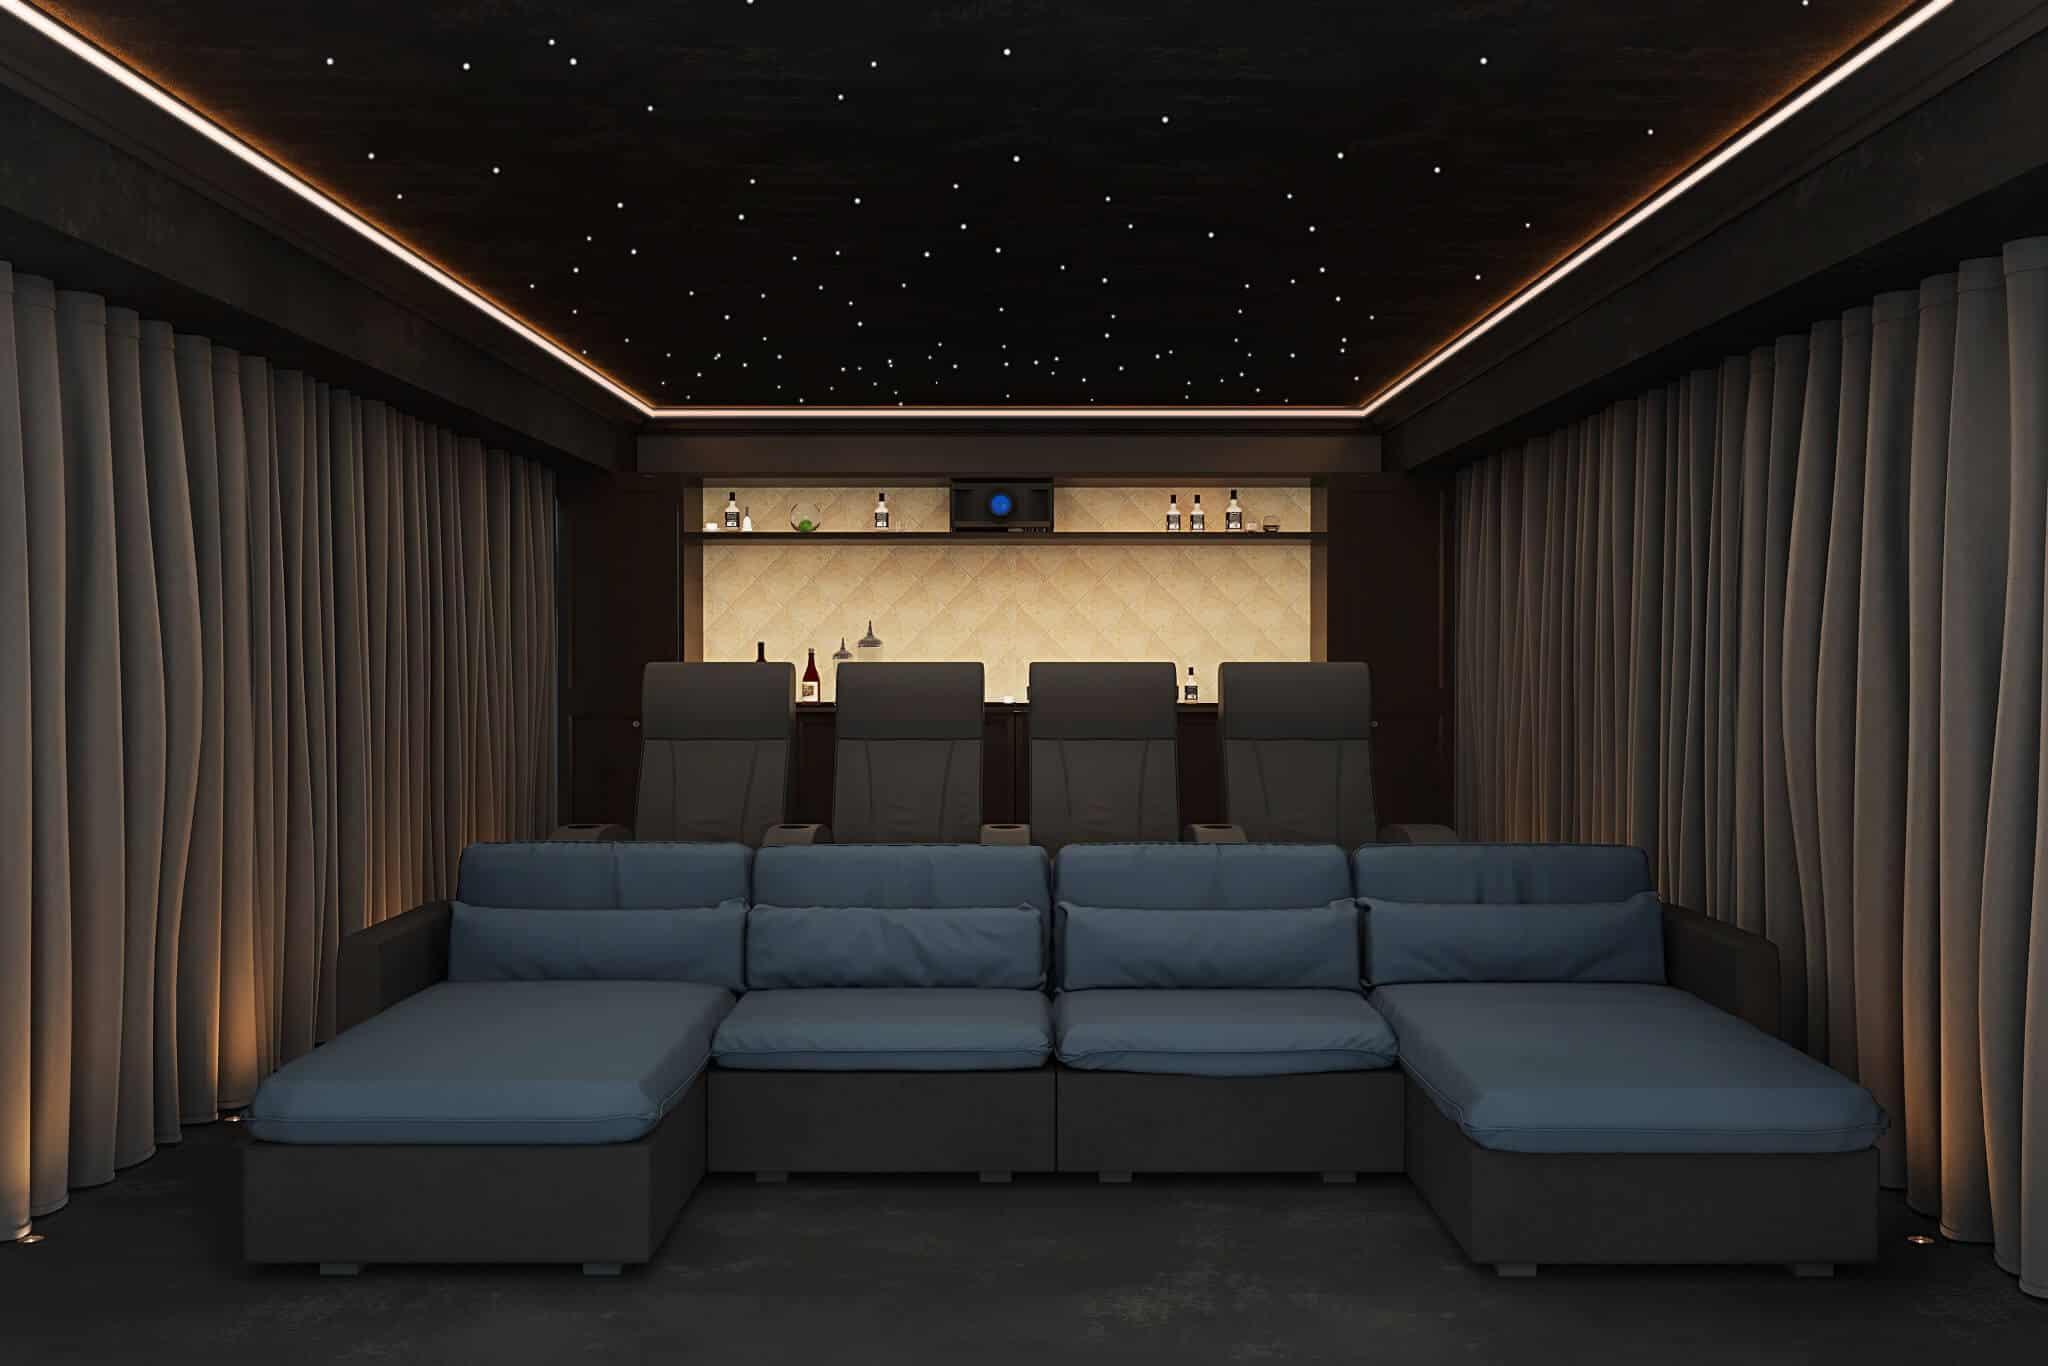 Garden Home Cinema Room Showing Cinema Seats